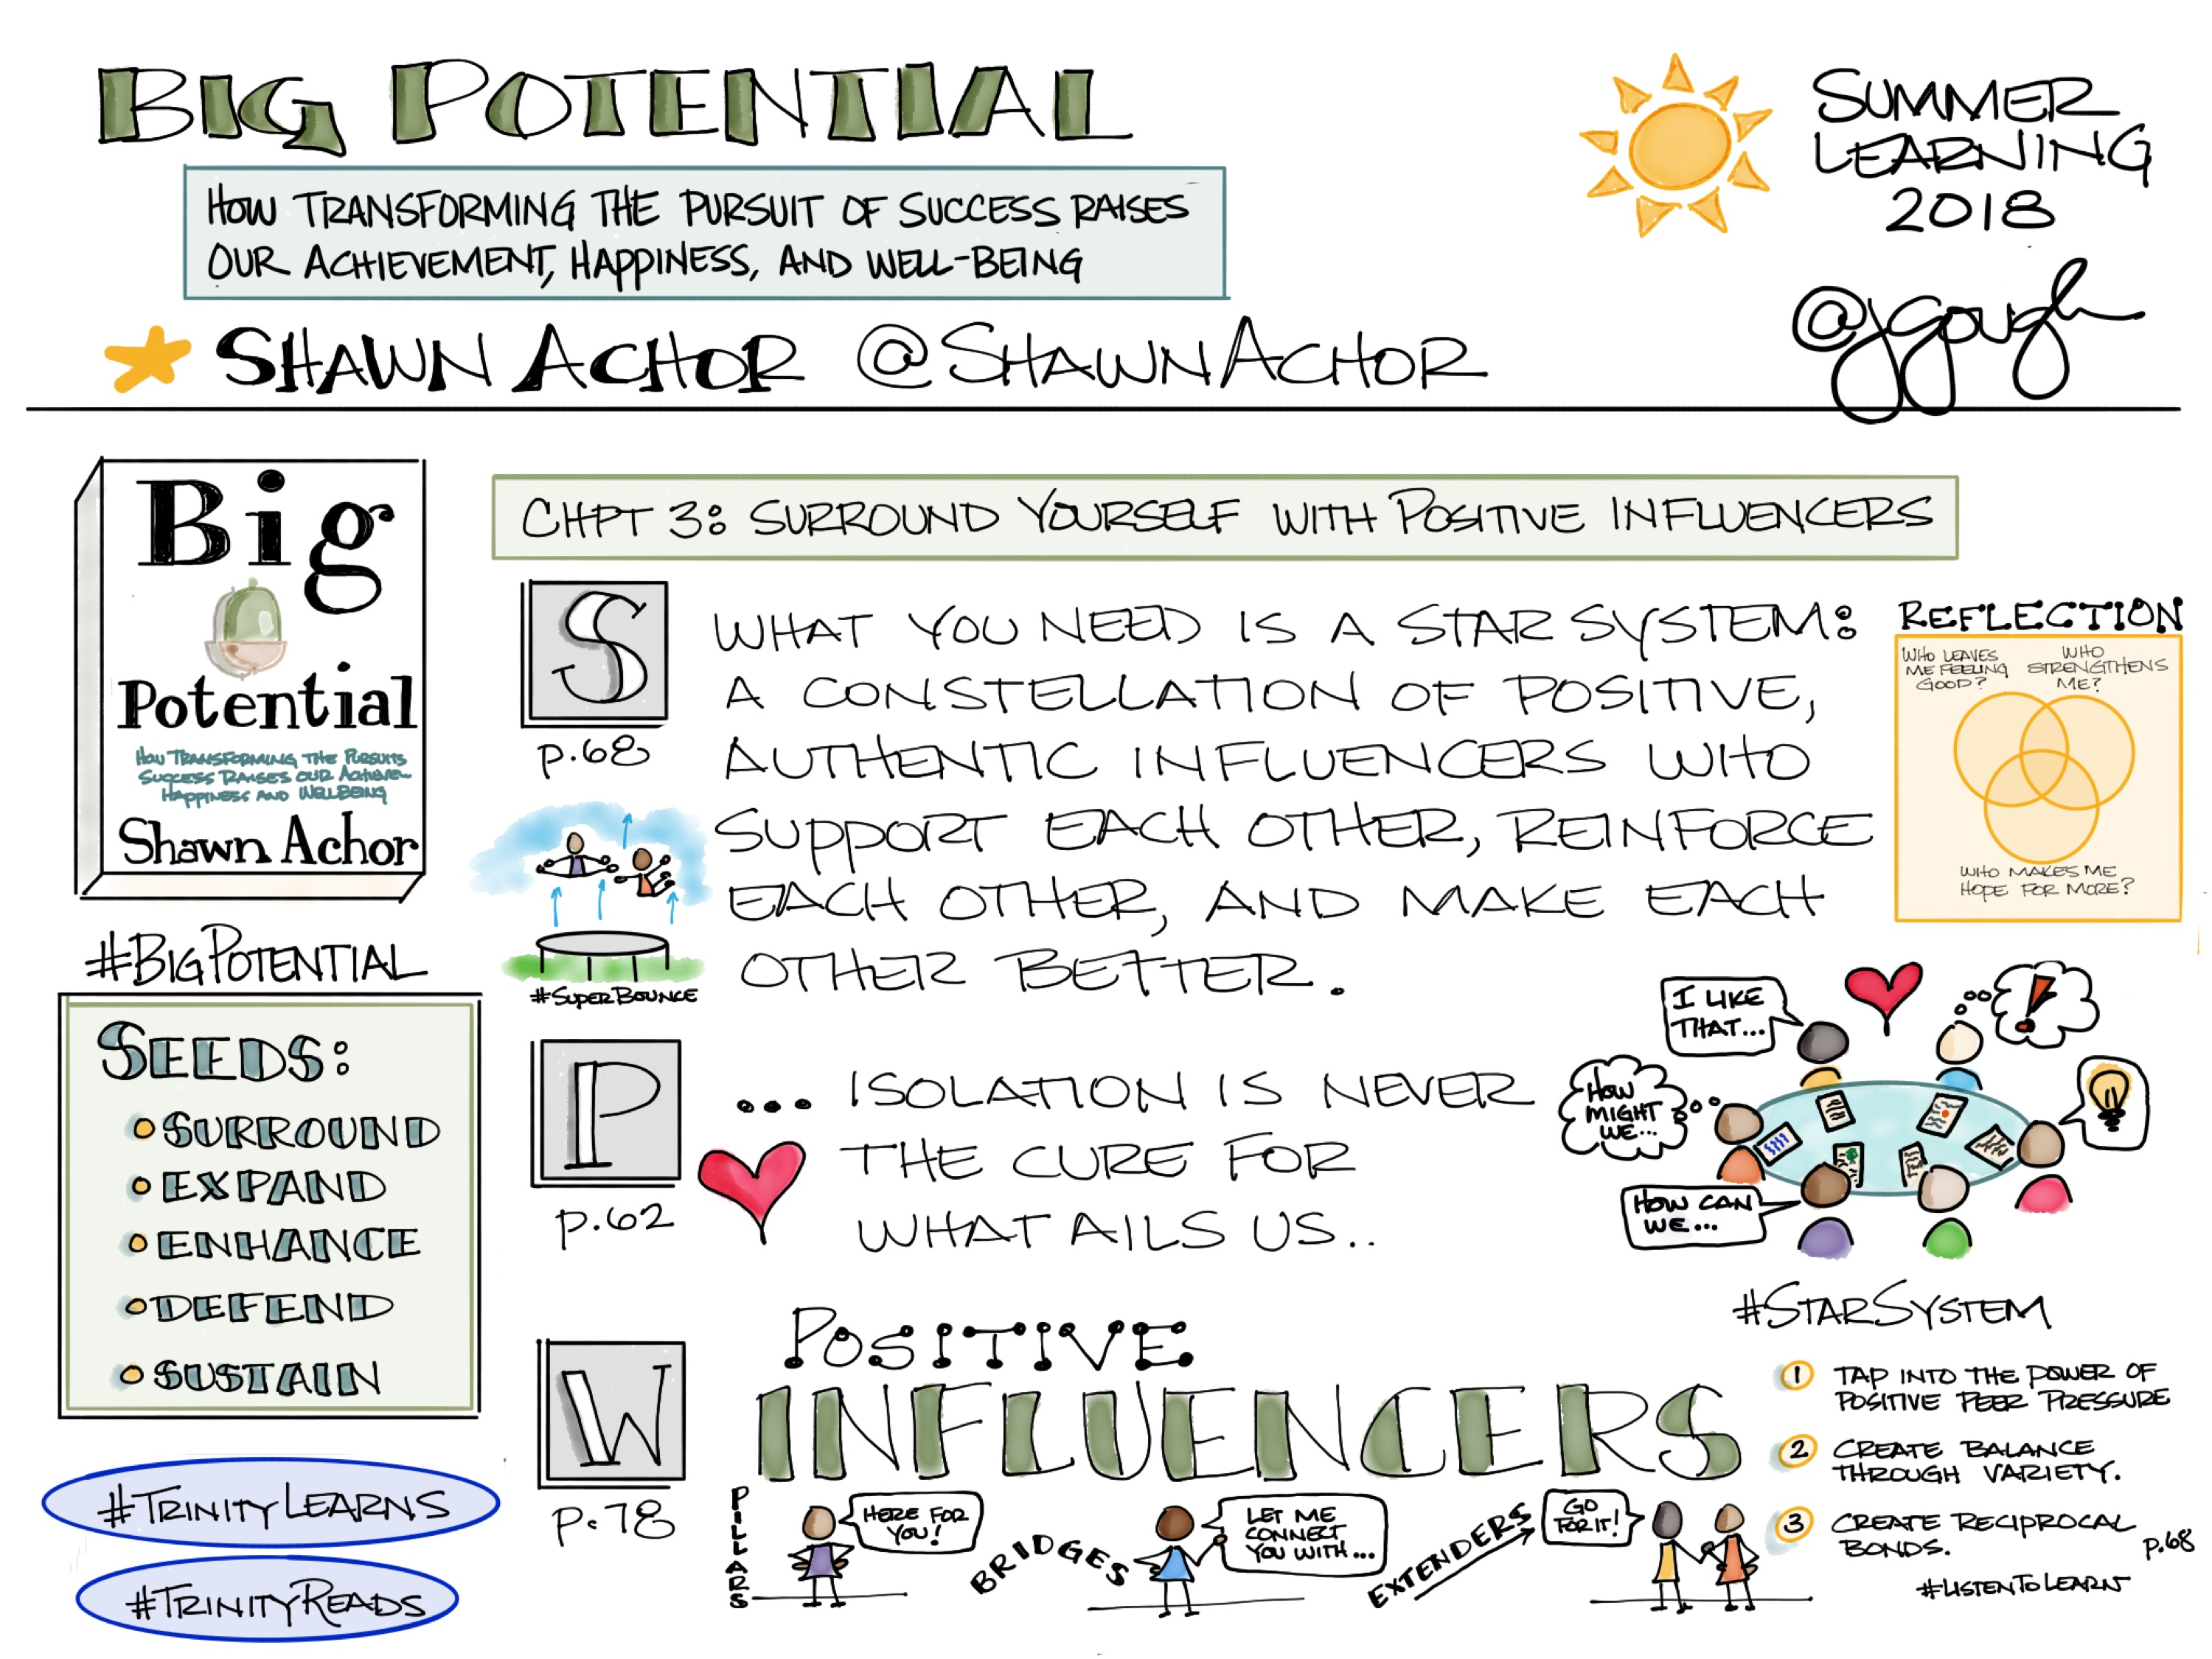 #BigPotential by @ShawnAchor Chapter 3: Surround Yourself With Positive Influencers – #TrinityLearns HMW serve as pillars, bridges, and extenders? #TrinityReads